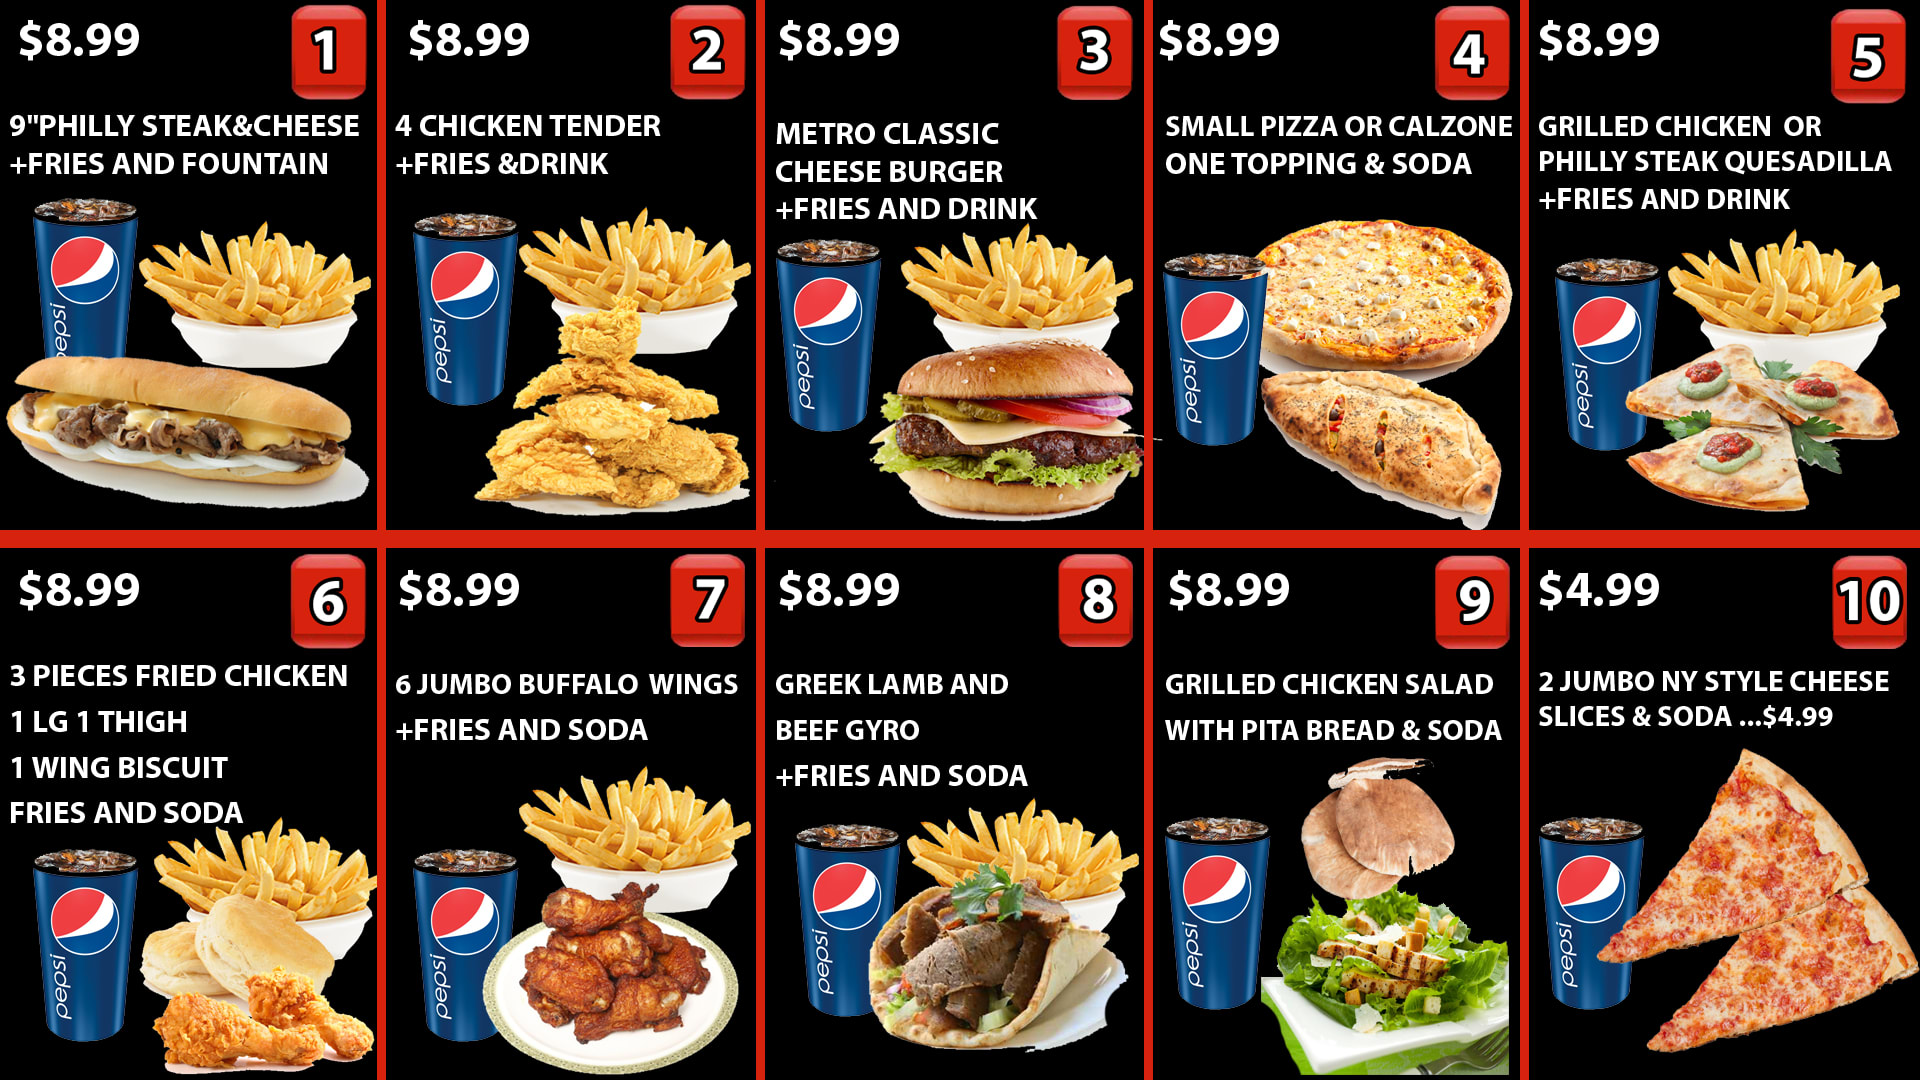 Create A Professional Digital Animated Restaurant Menu By Aris74 Trying to find a euro gyro? create a professional digital animated